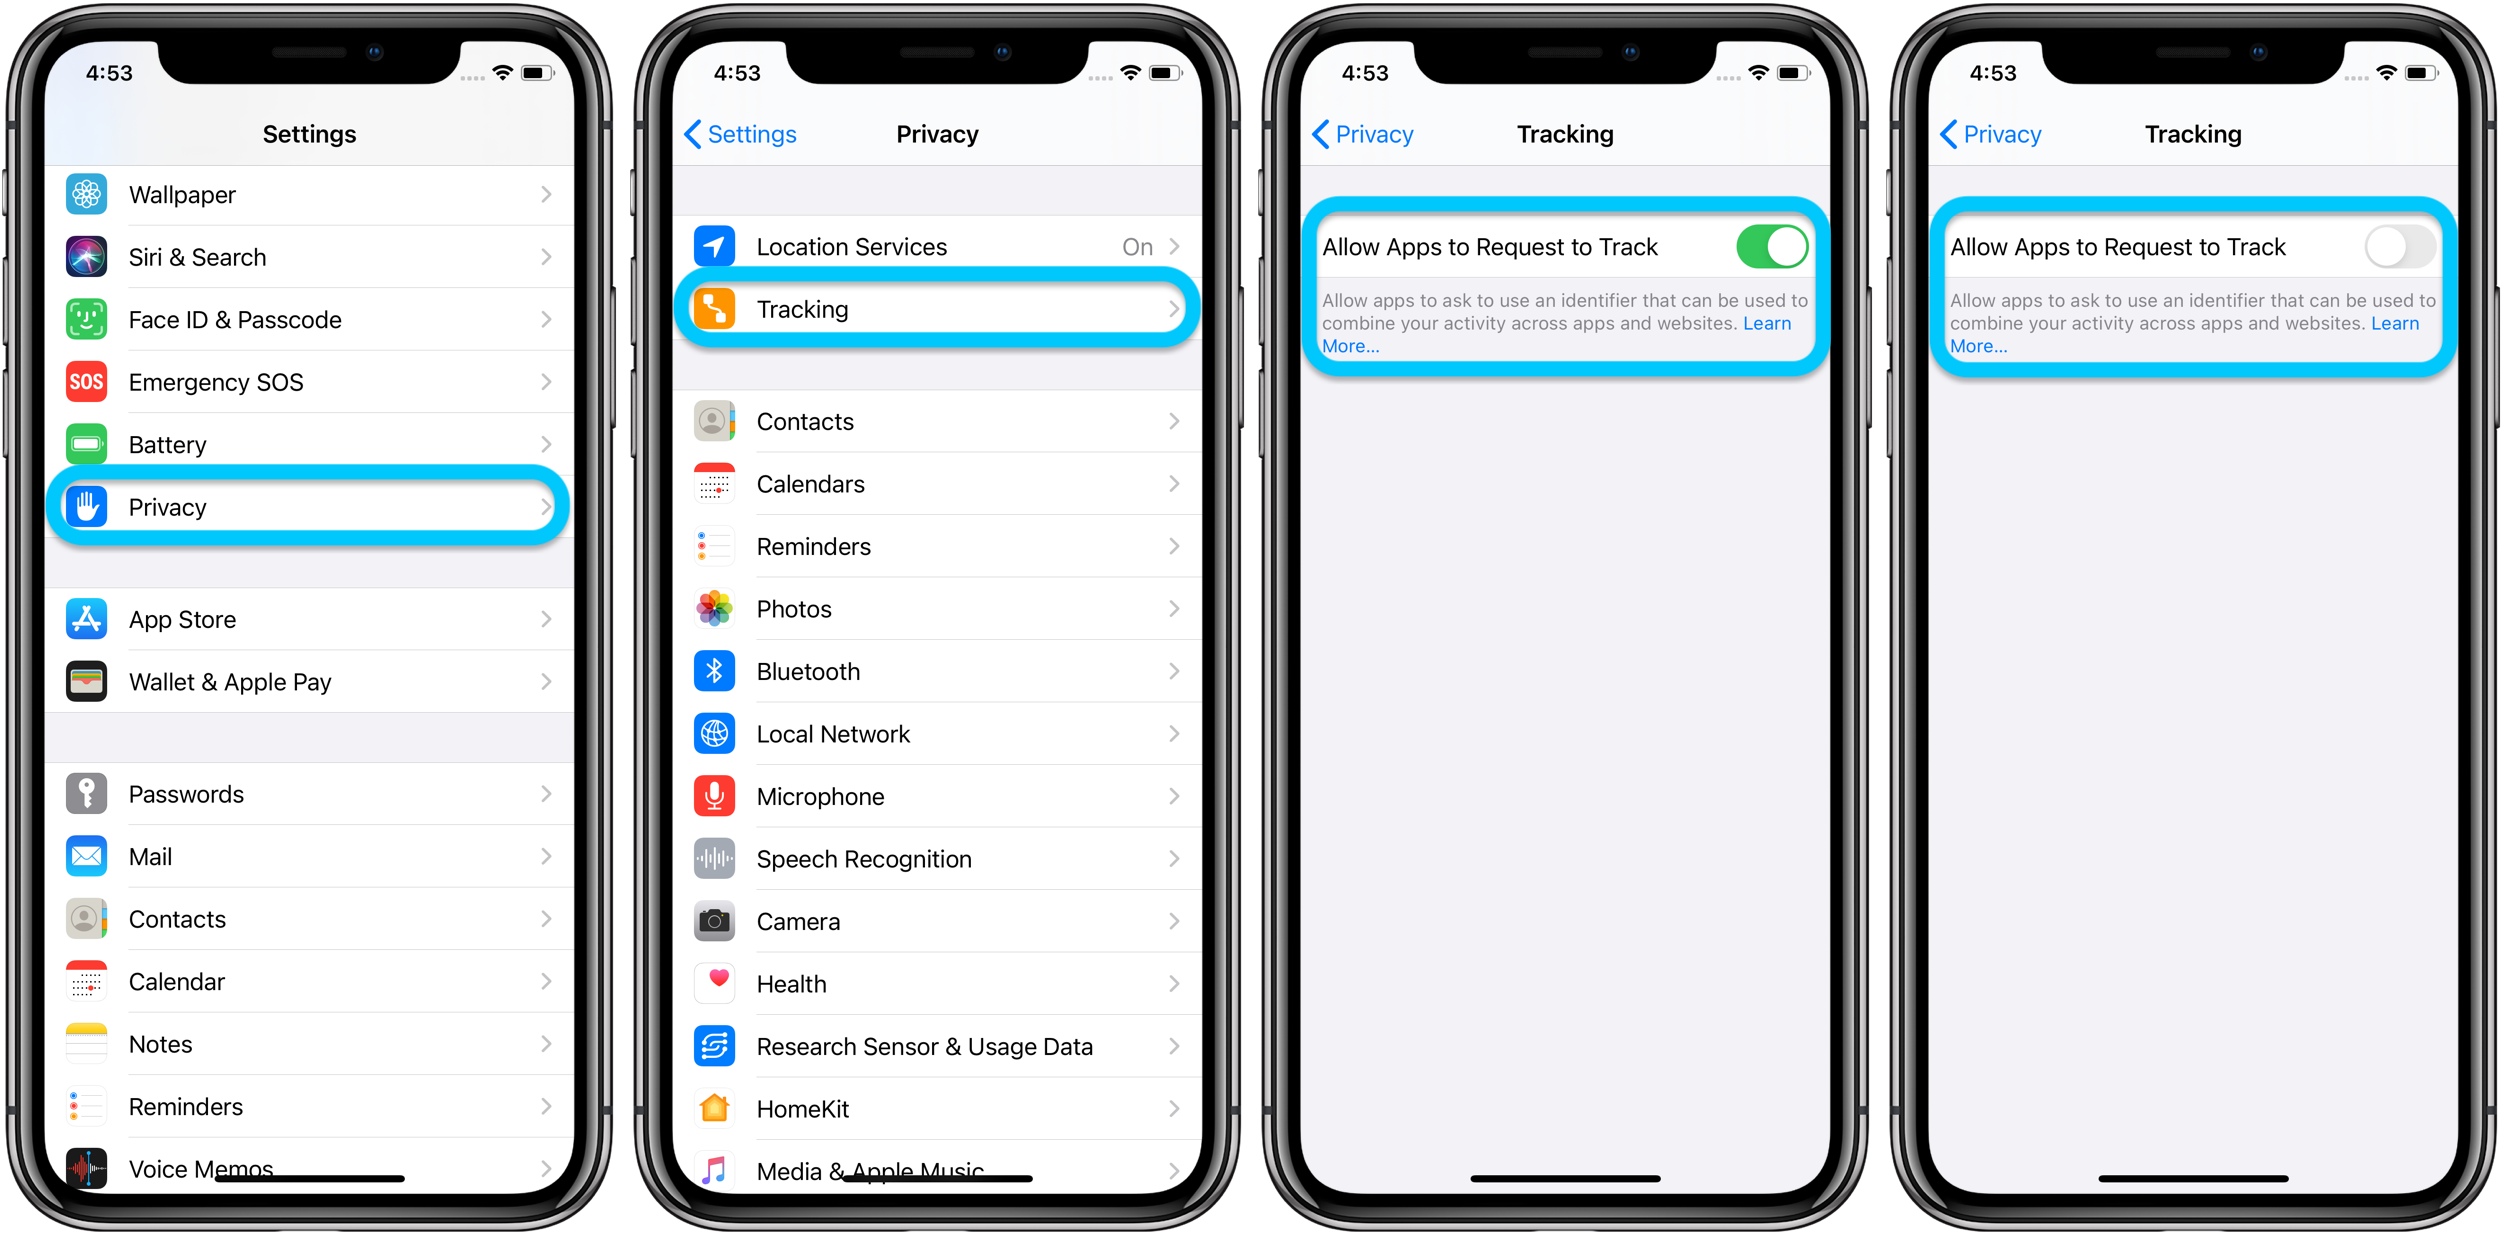 How to block iPhone apps from tracking you